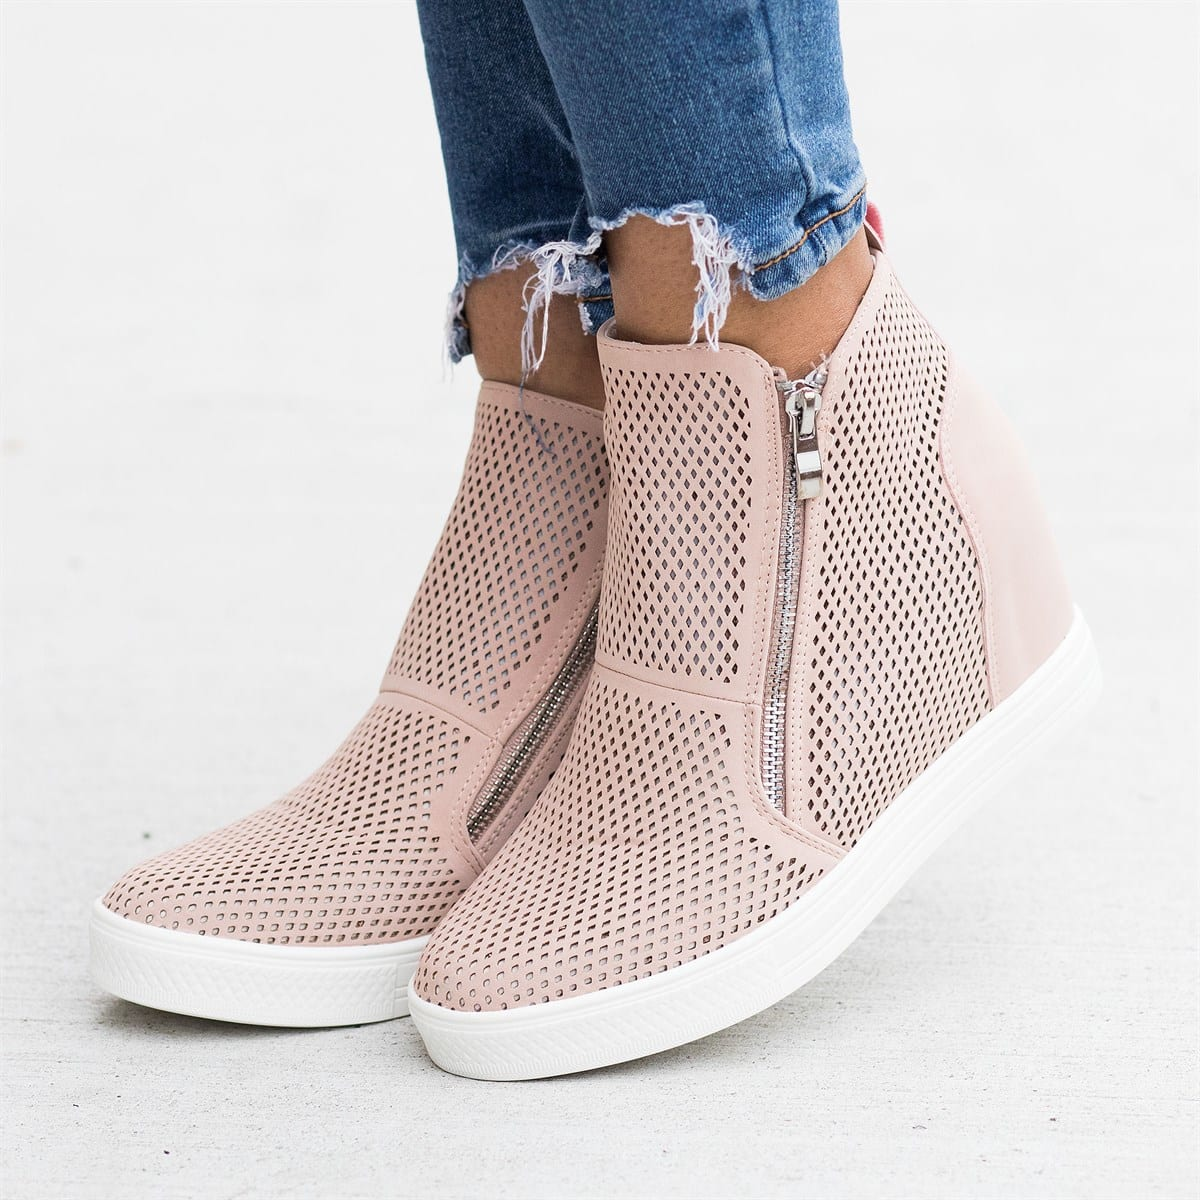 WENYUJH 2019 Woman Casual Shoes PU Leather Within The Higher Pure Fashion Side Zipper Sneakers Anti Skid Outsole Ladies Shoes